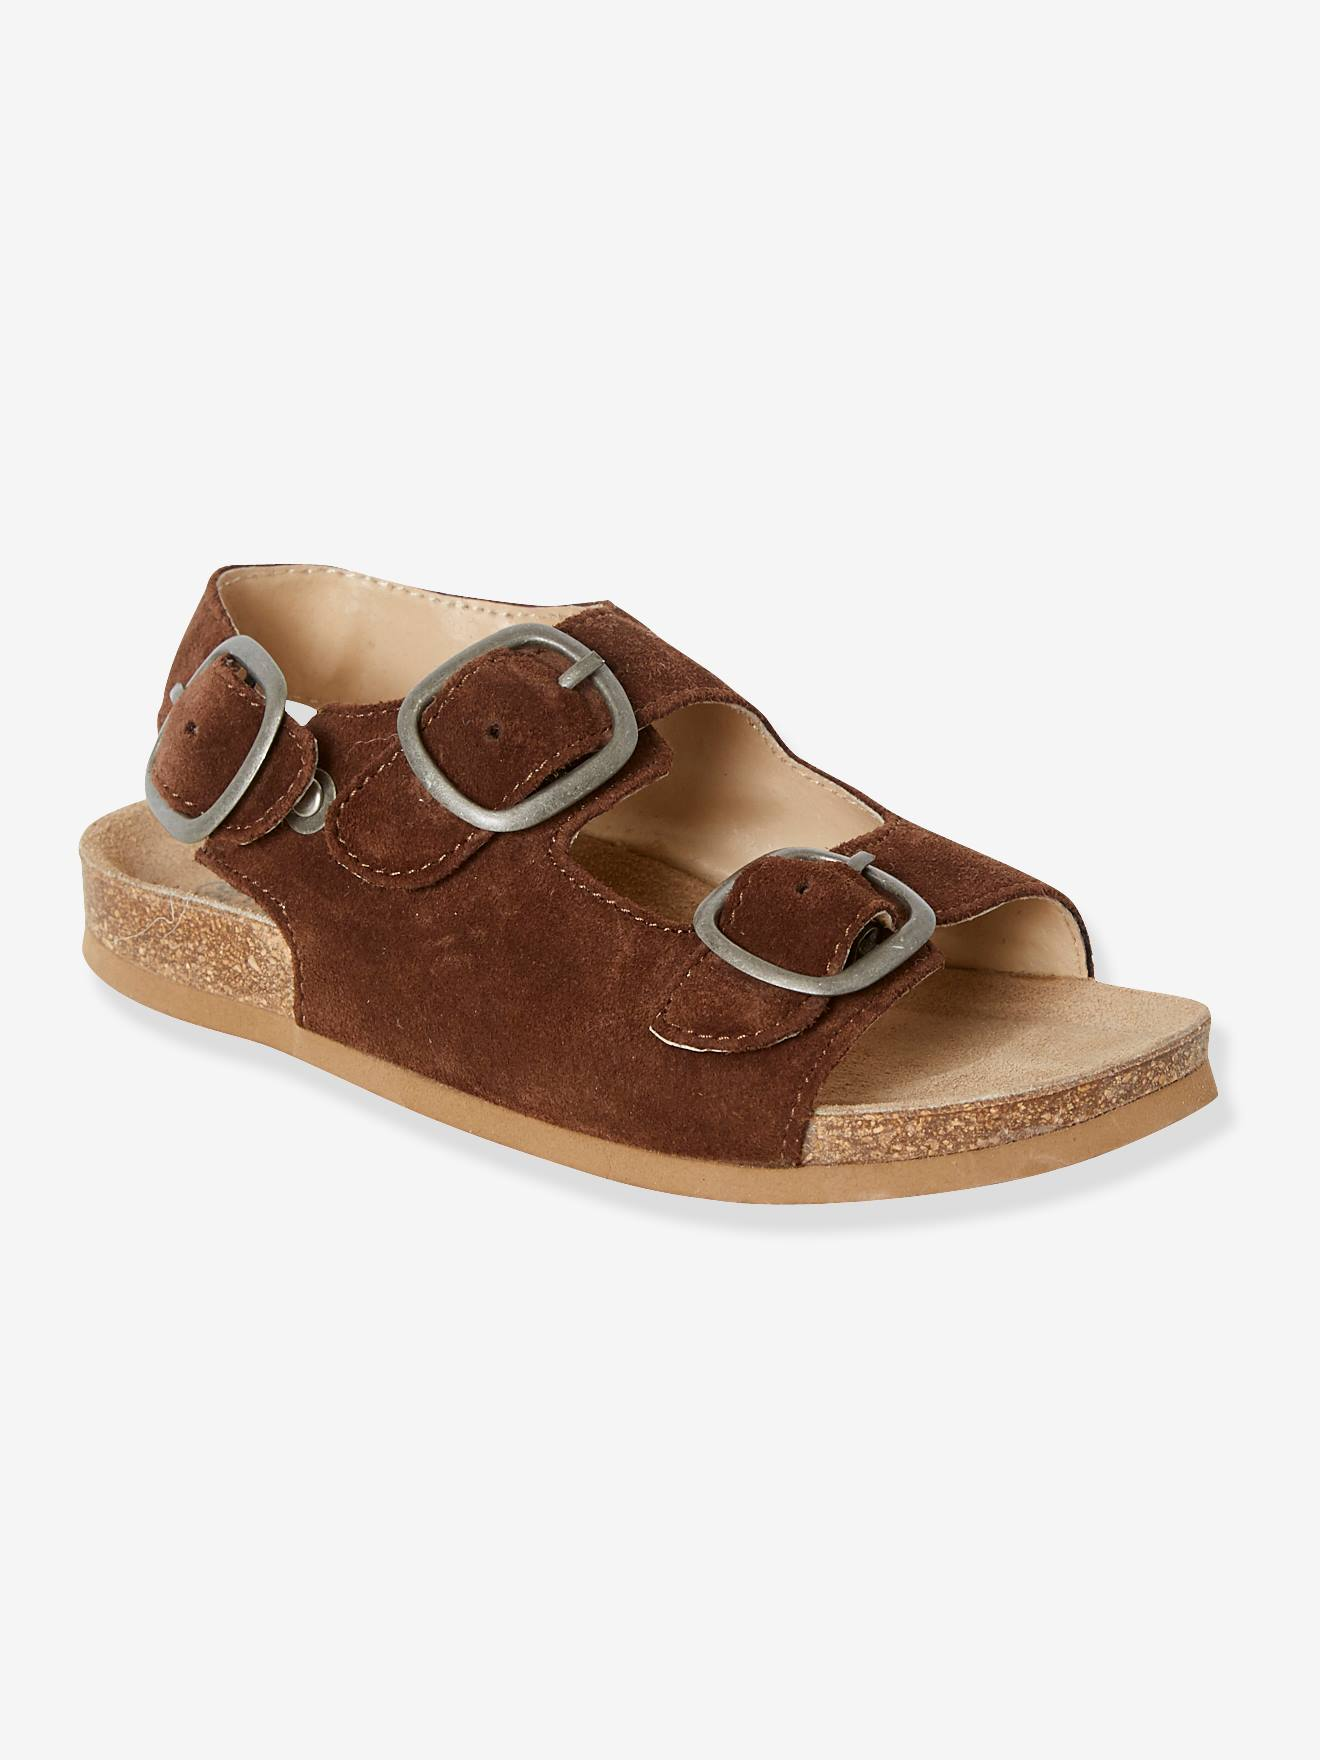 cfc1b8850 Anatomic Leather Sandals for Boys - brown dark solid, Shoes